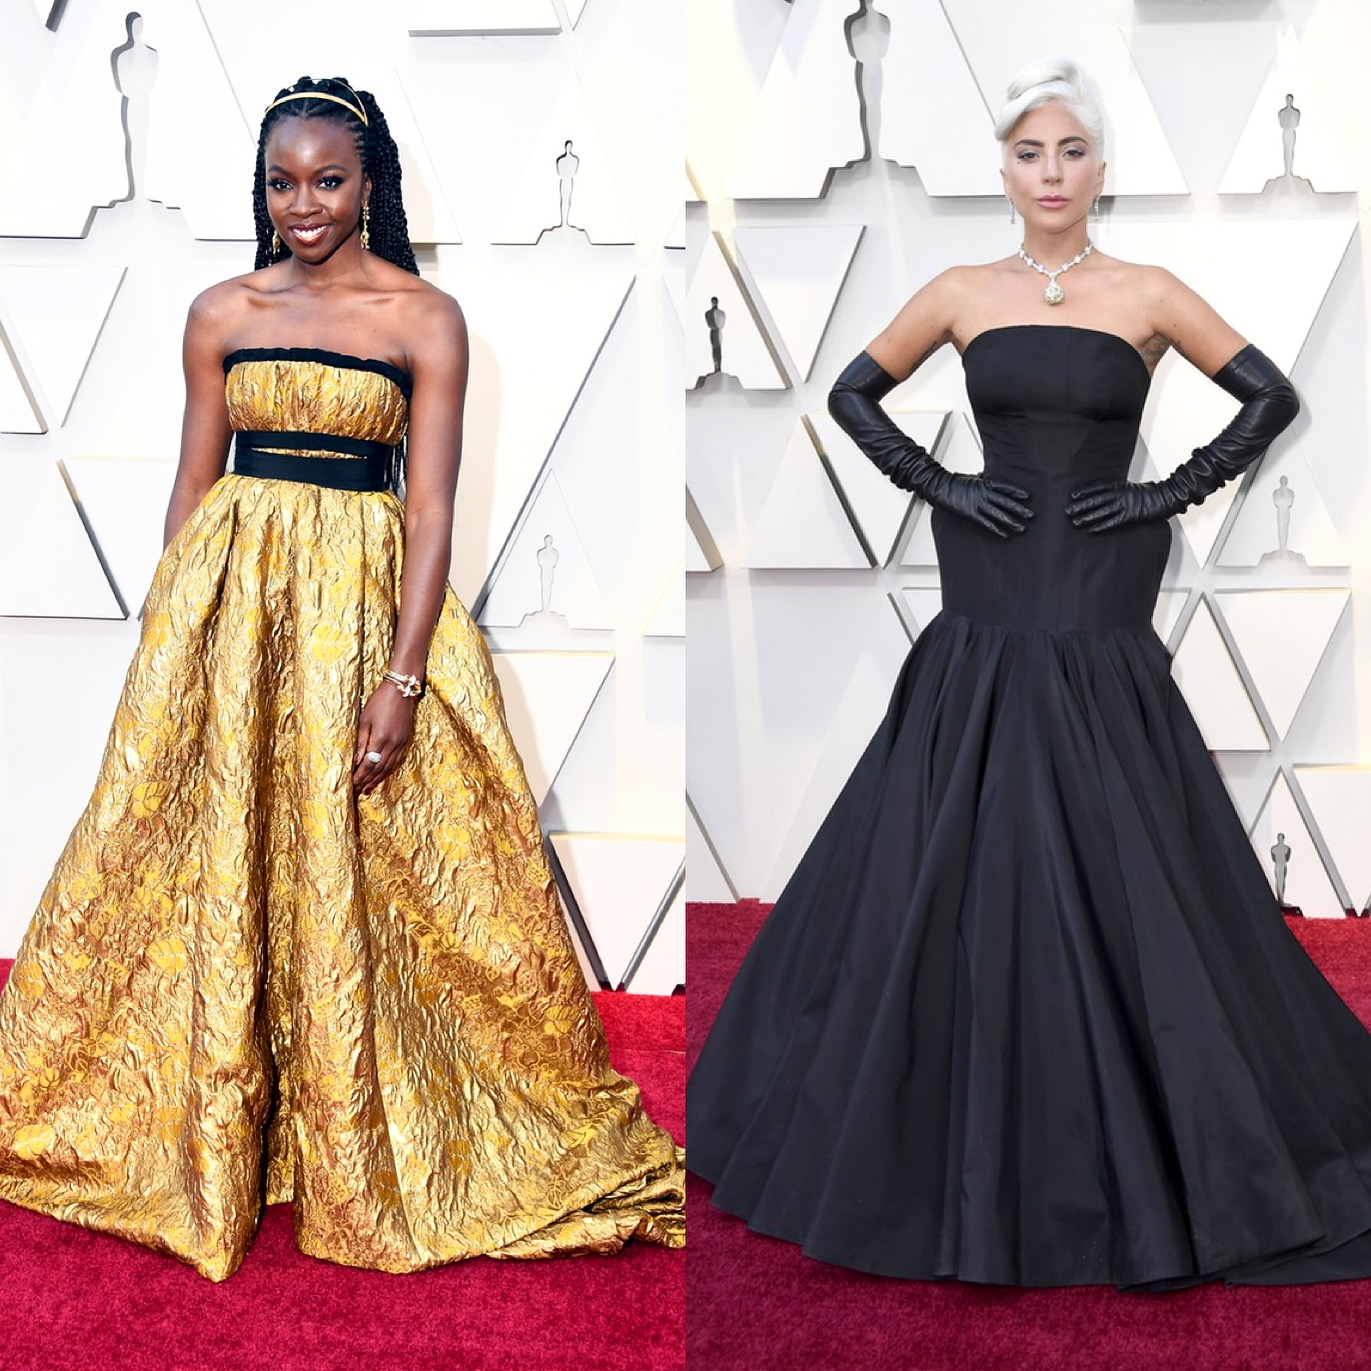 BEST LOOKS AT THE 2019 OSCARS